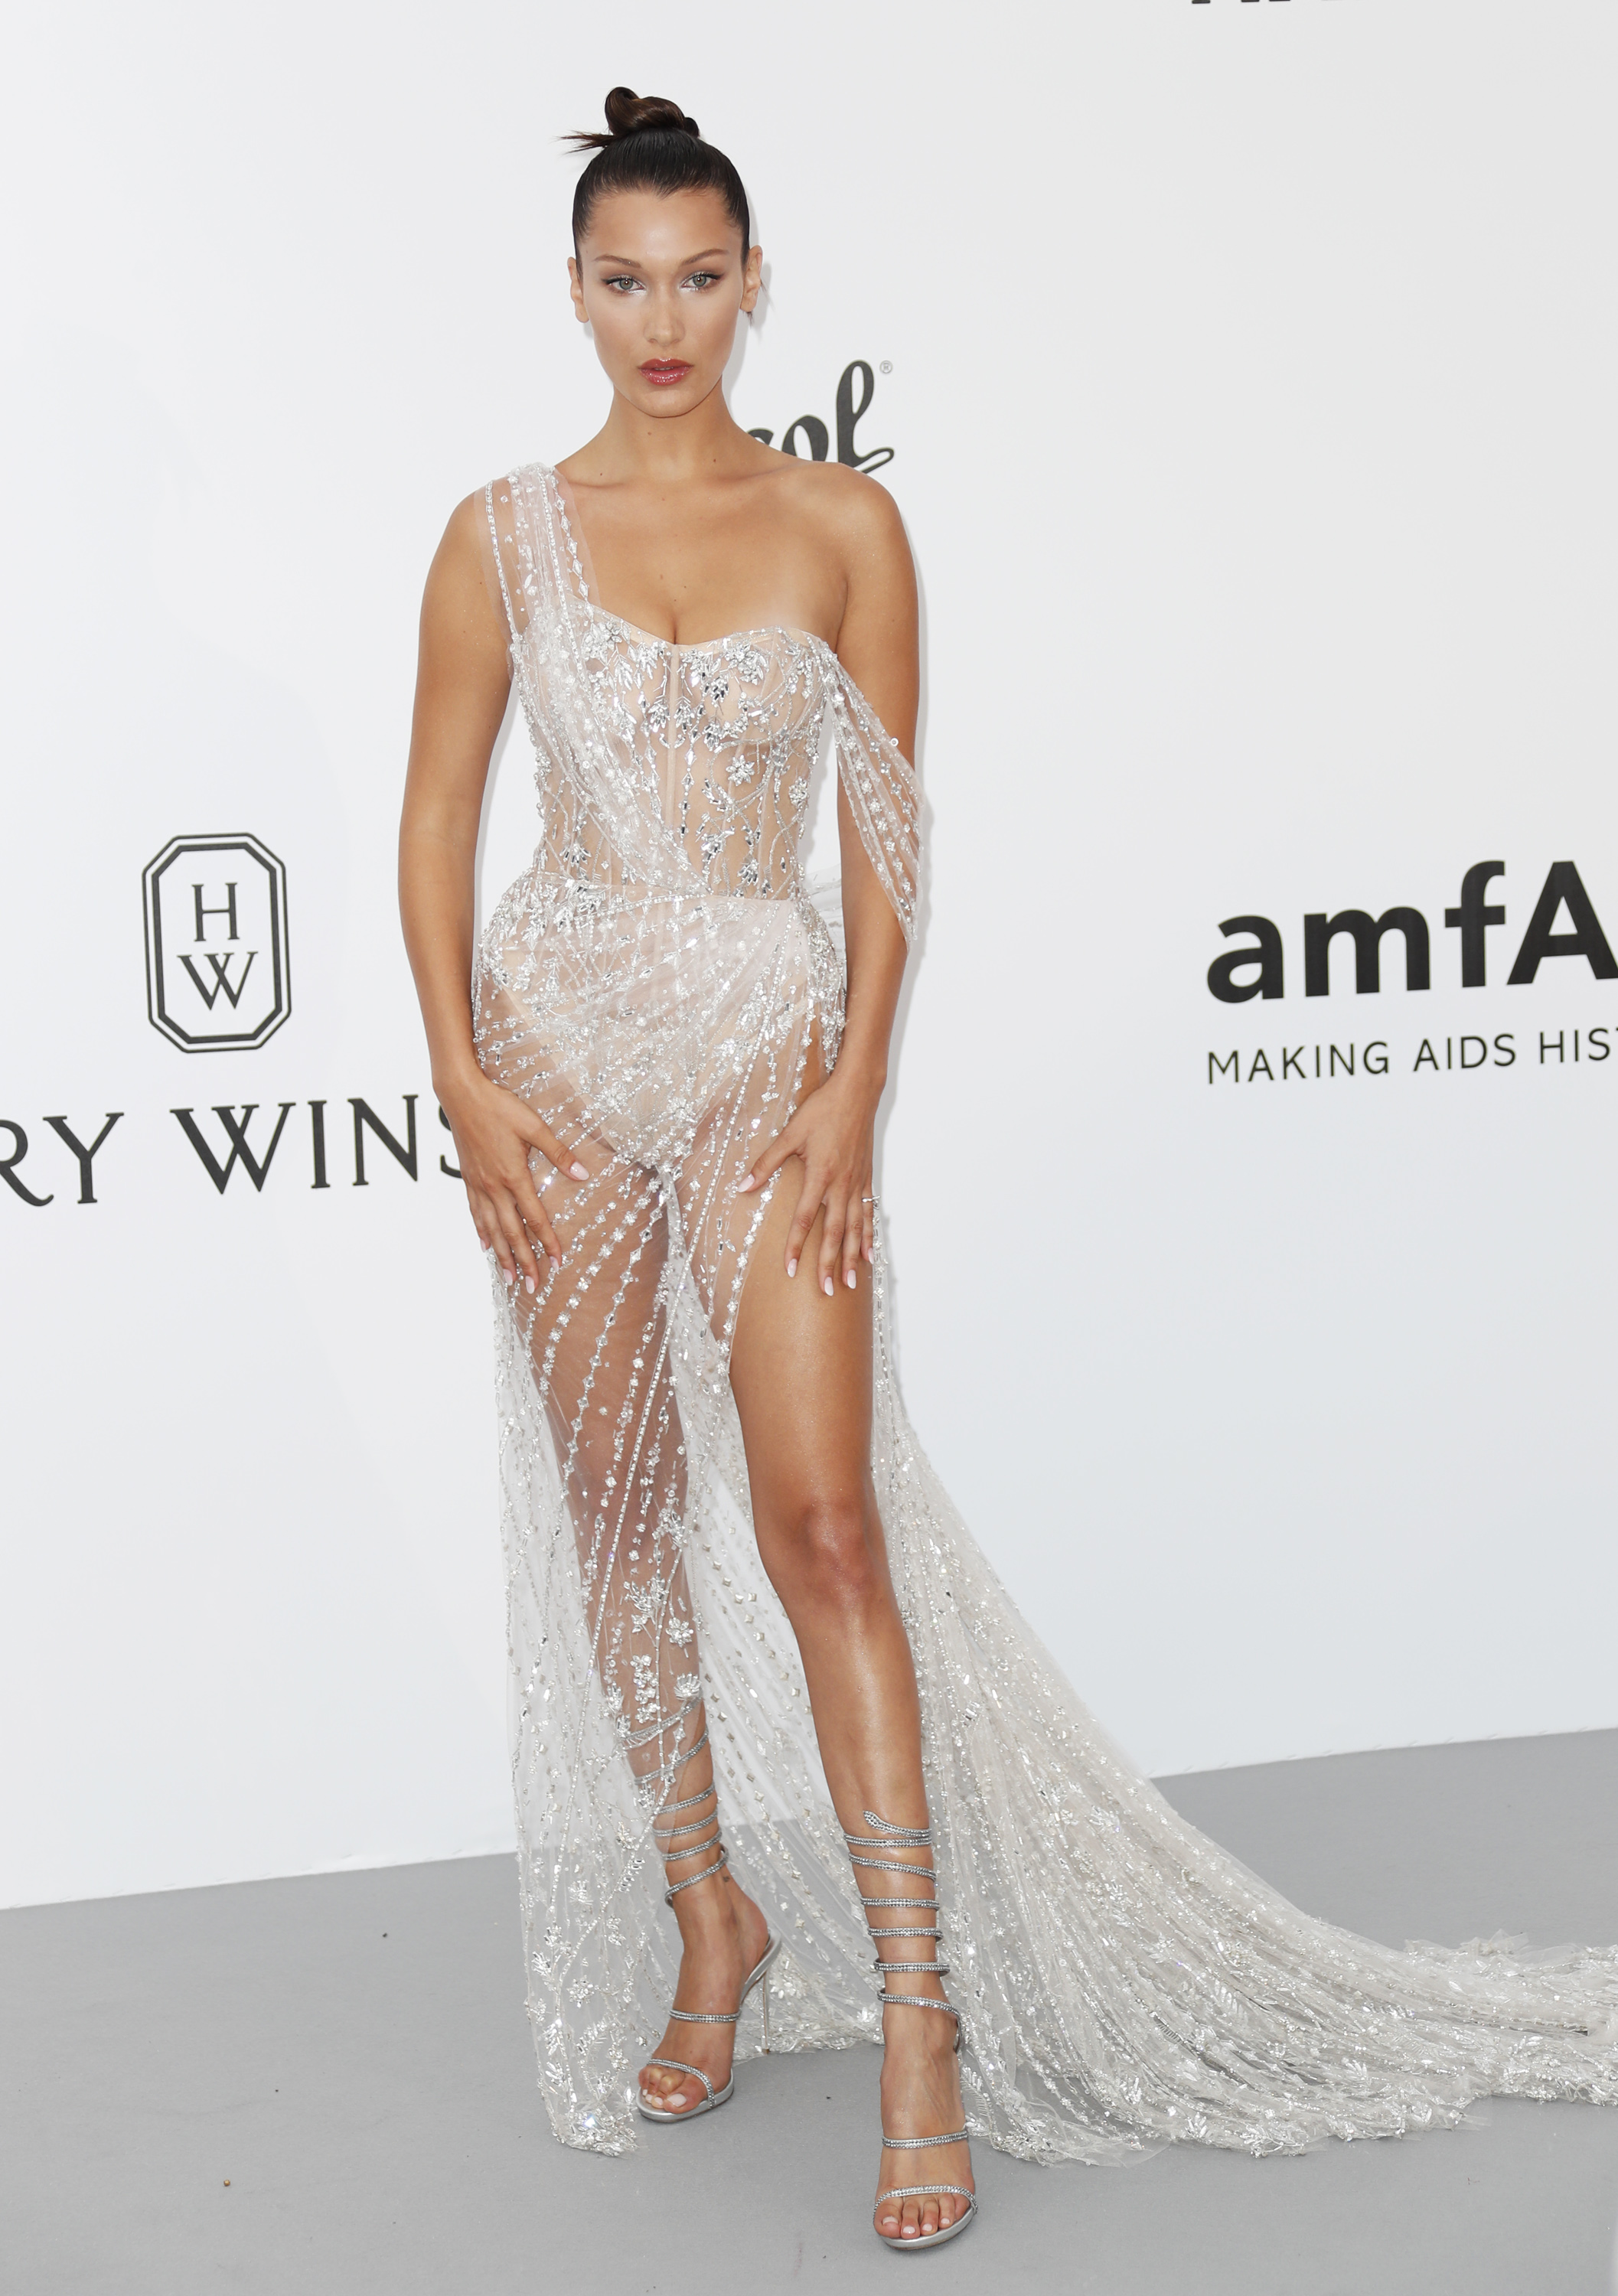 The Nude Dresses Ruling The Cannes Red Carpet 9style